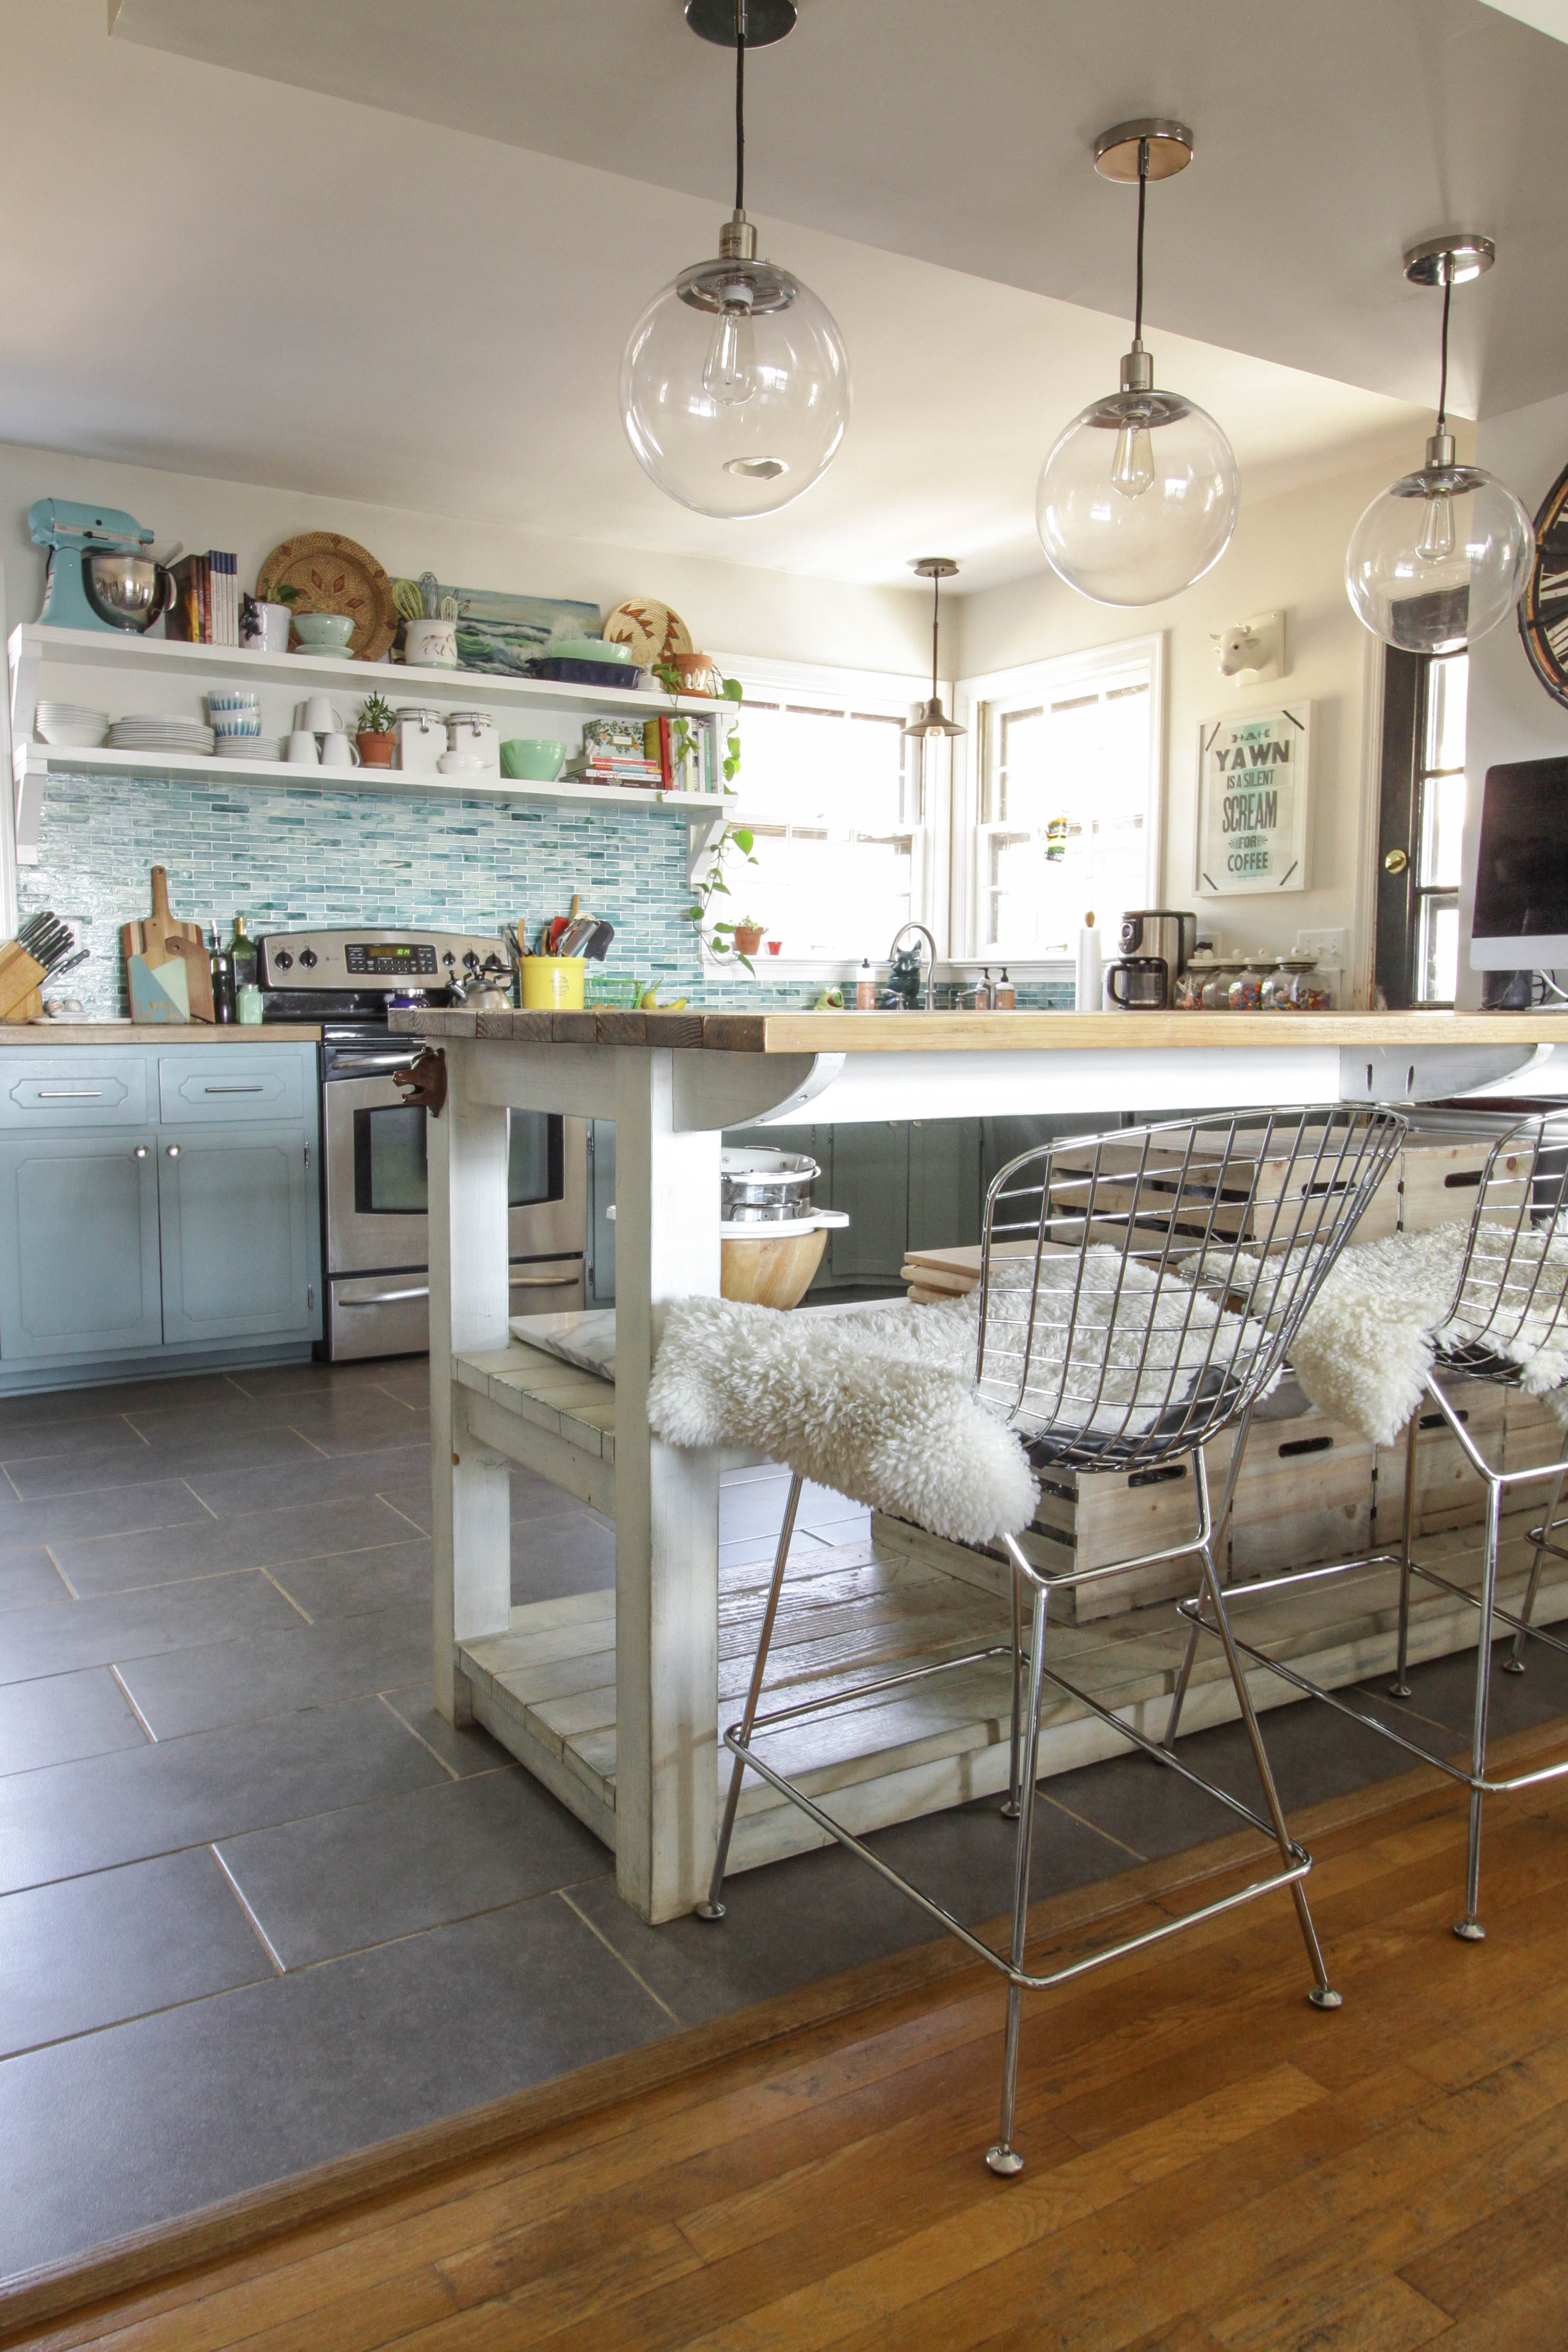 Our Spring Dining Room: Eclectic Spring Dining Room & Kitchen Tour Filled With